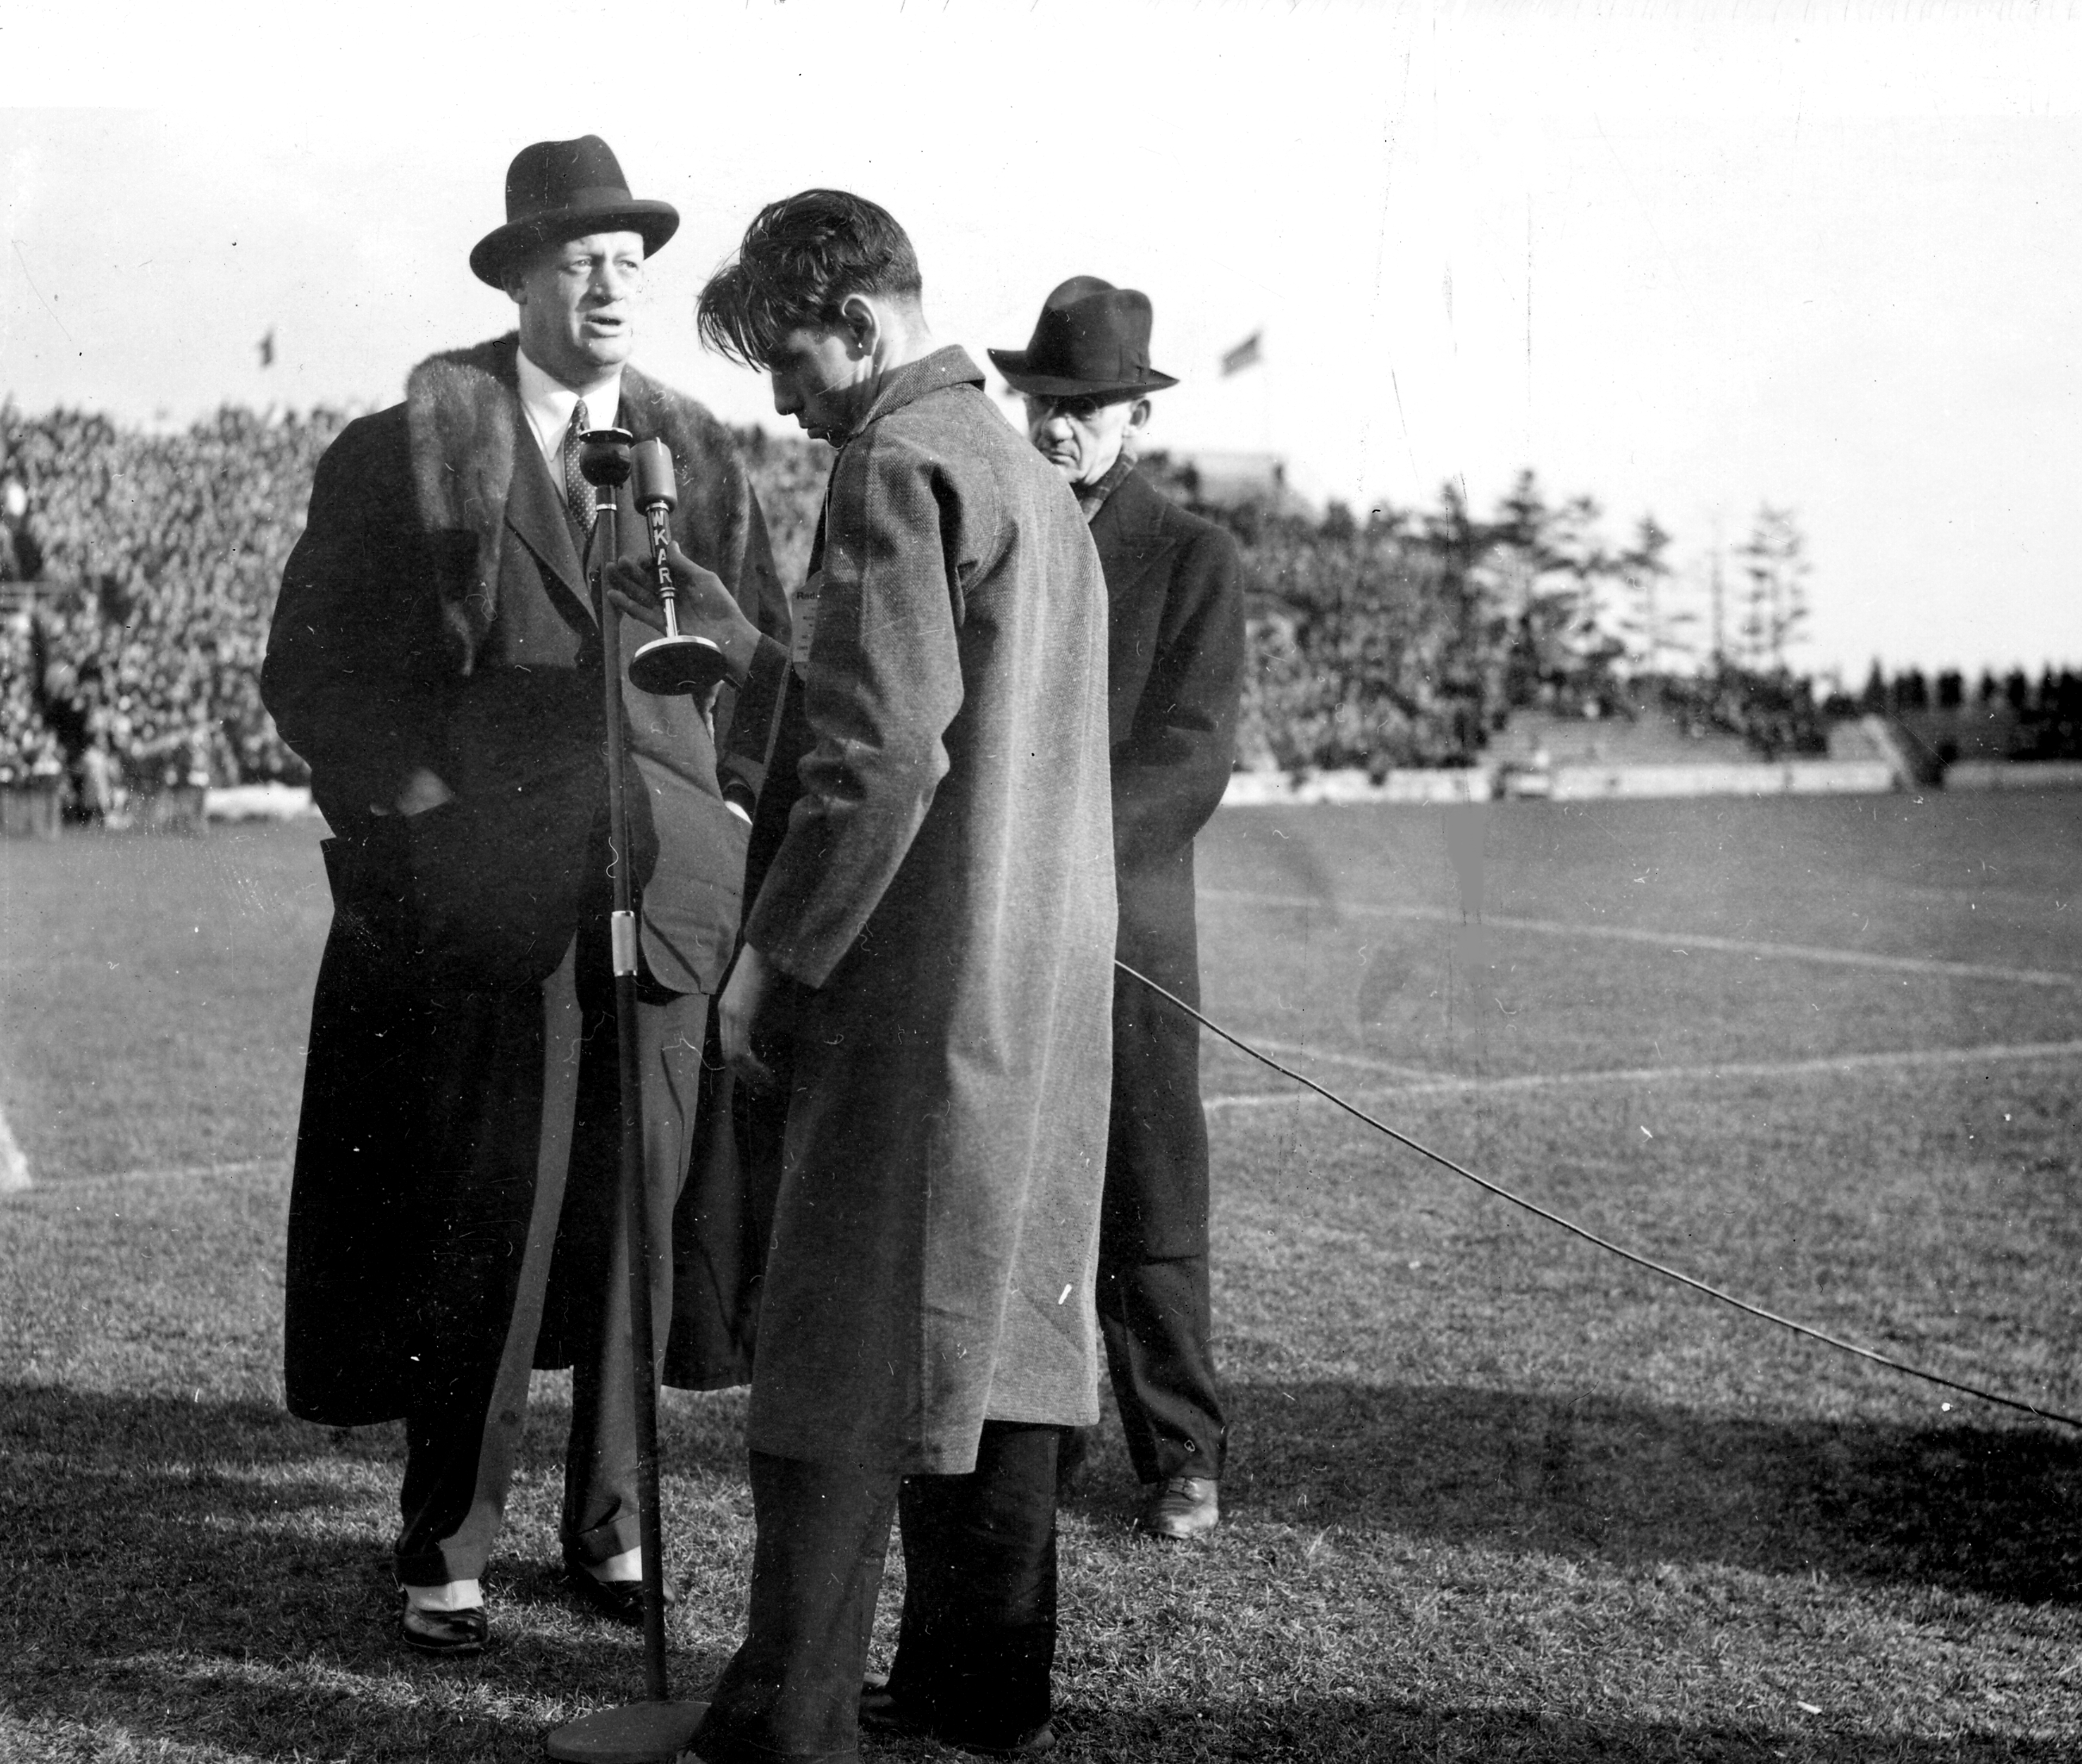 Coaches Macklin and Shaw address a crowd, date unknown